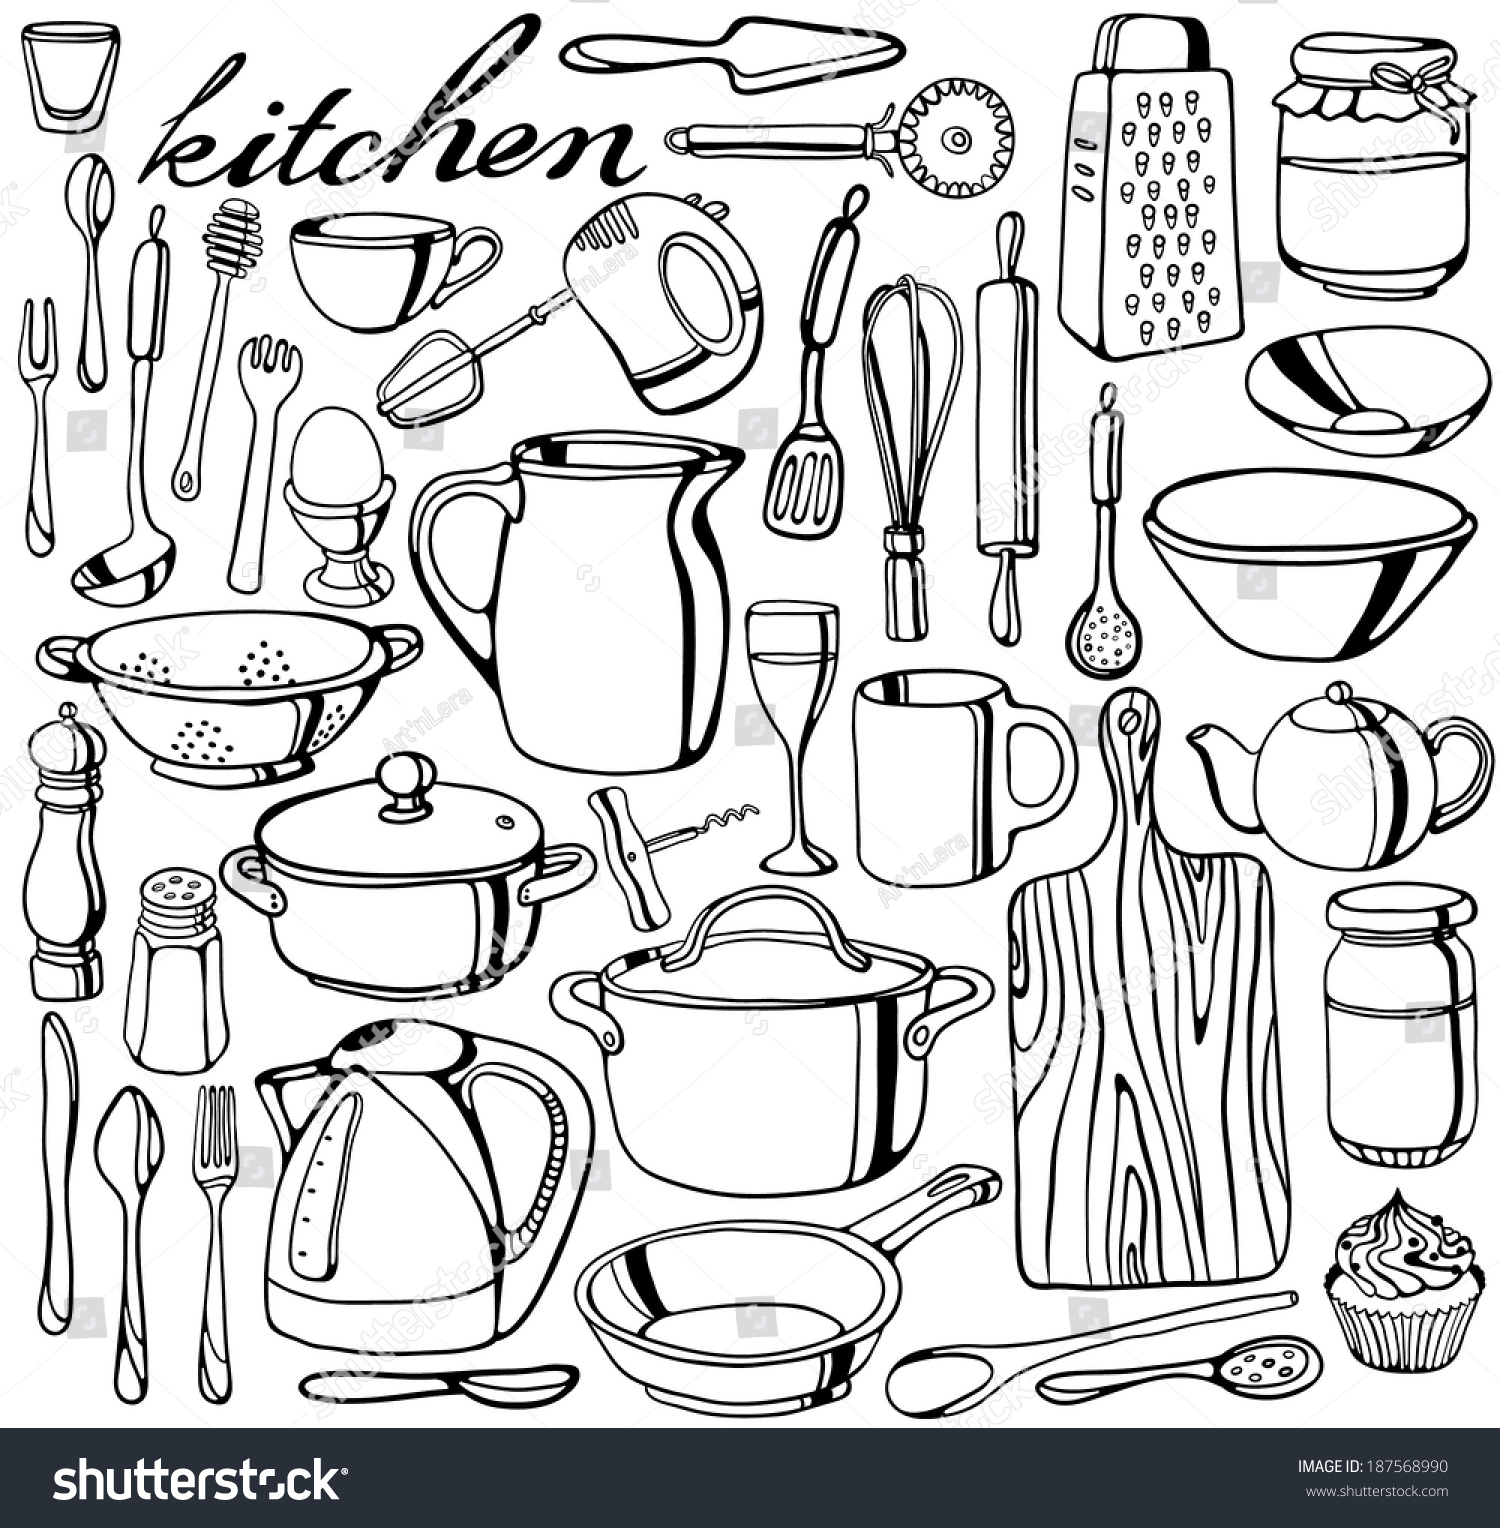 Kitchen Tools Drawing Handdrawn Kitchen Tools Collection Stock Vector 187568990